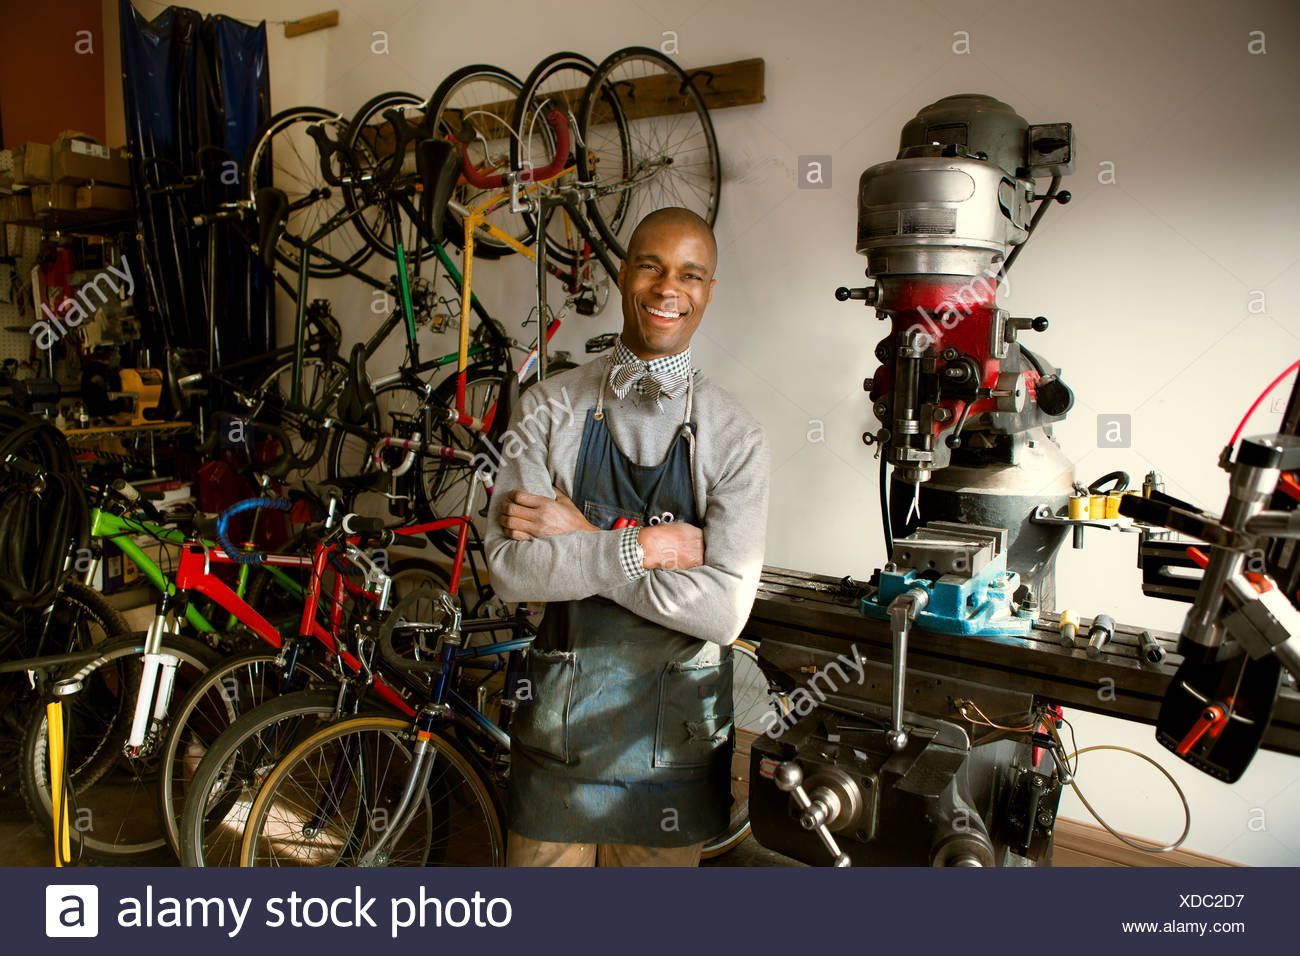 Mechanic in bicycle workshop with arms crossed - Stock Image